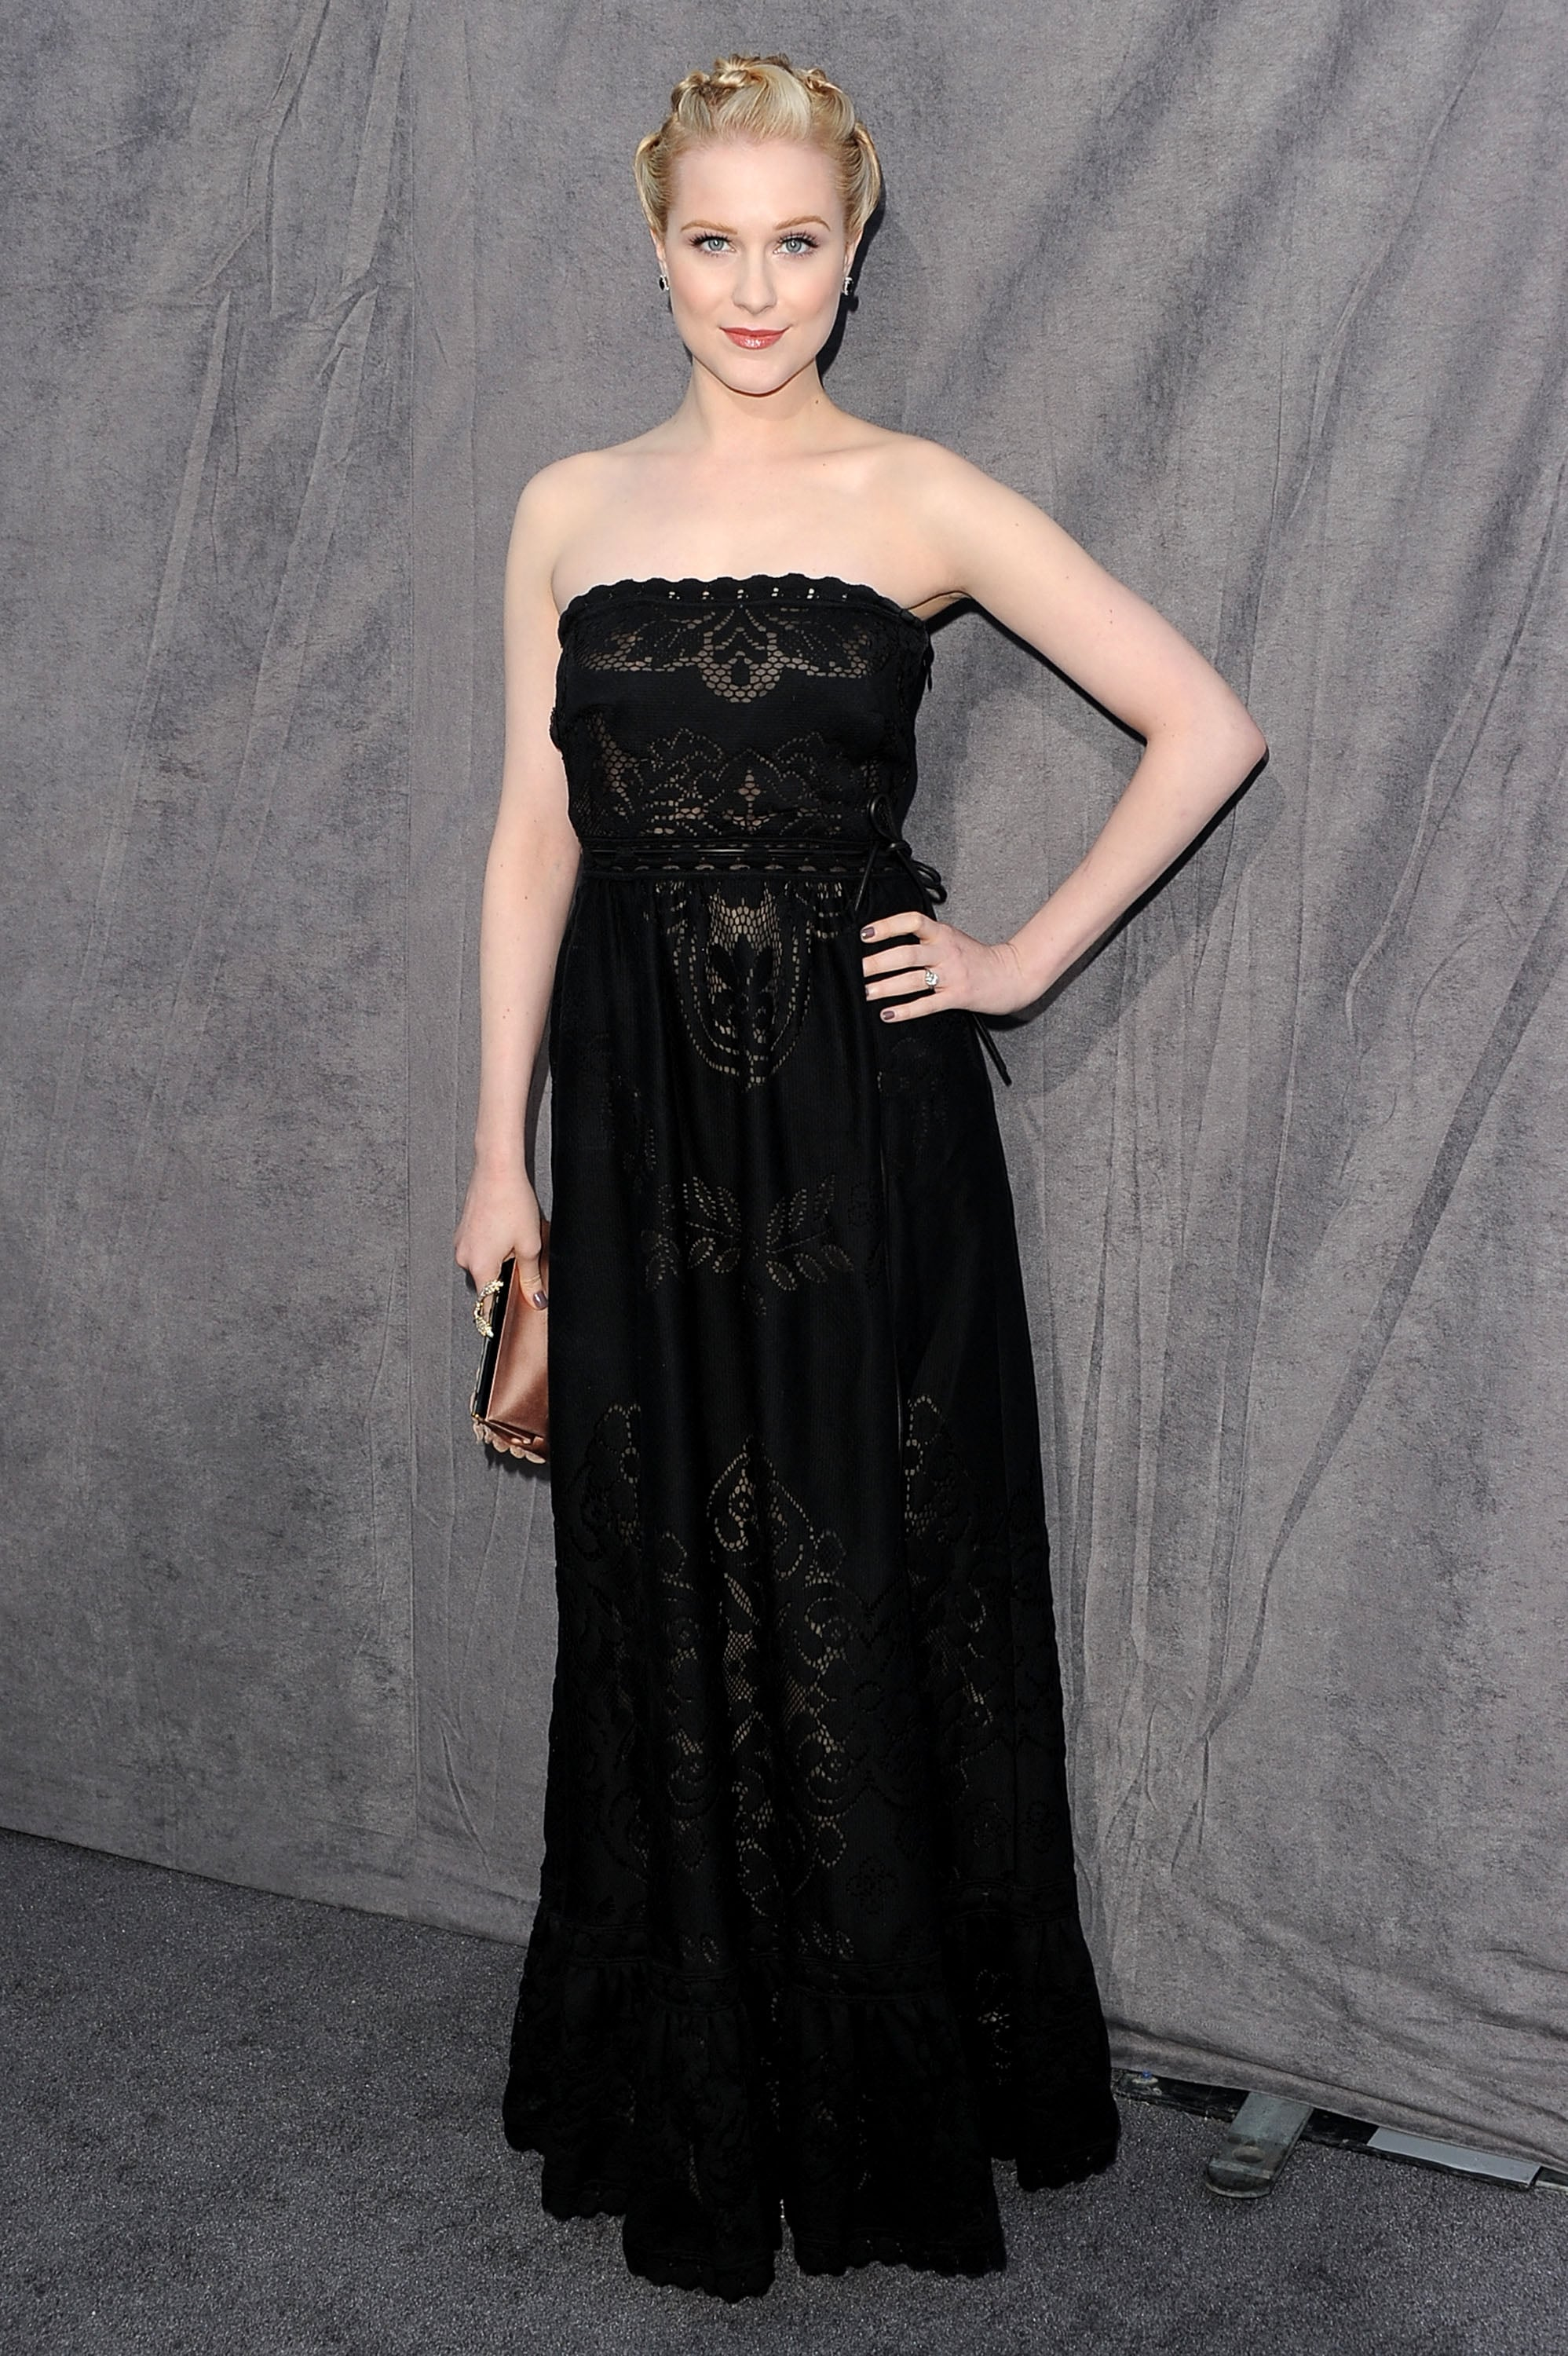 Evan Rachel Wood hit the gray carpet in a strapless black dress at the 2012 Critics' Choice Movie Awards.